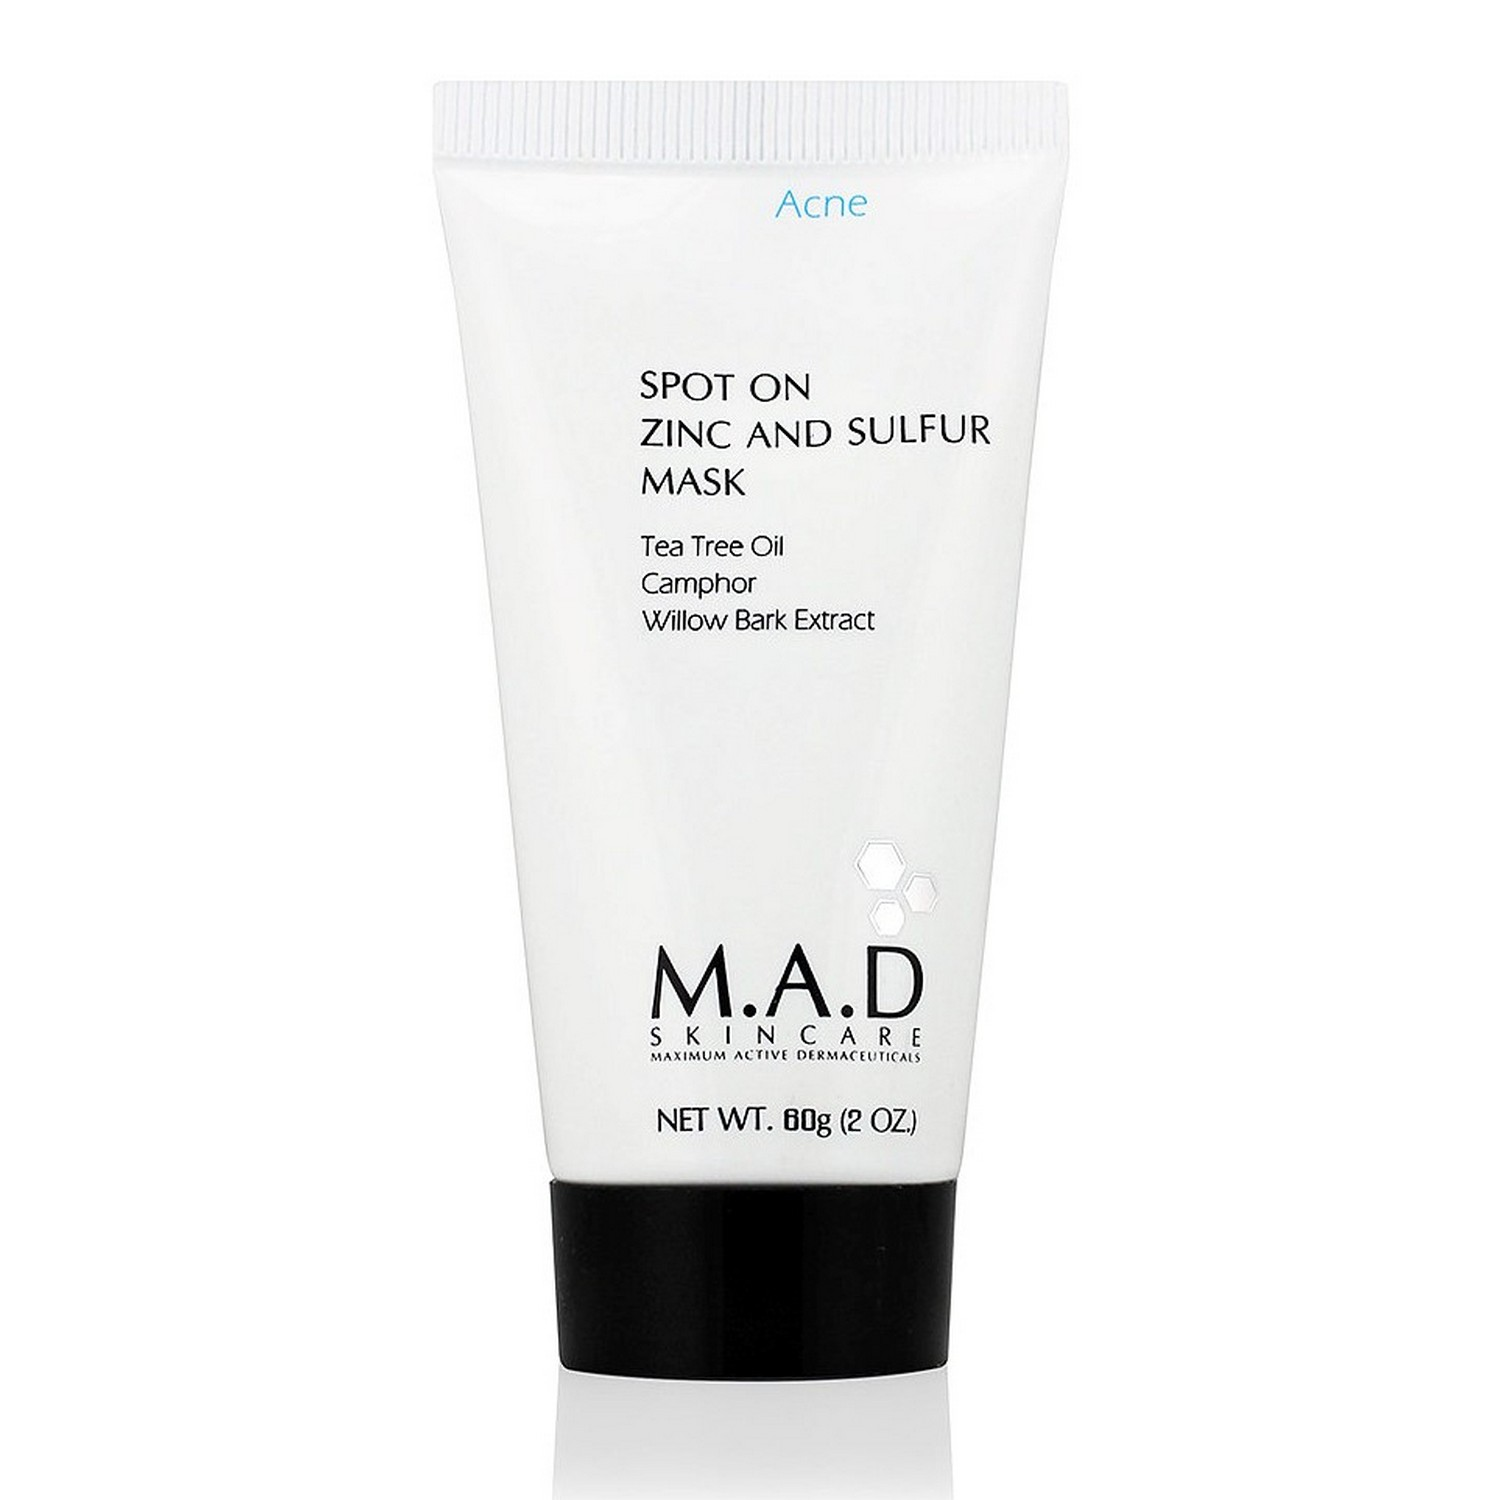 M.A.D SKINCARE SPOT ON ZINC AND SULFUR MASK (60 g / 2.0 oz)